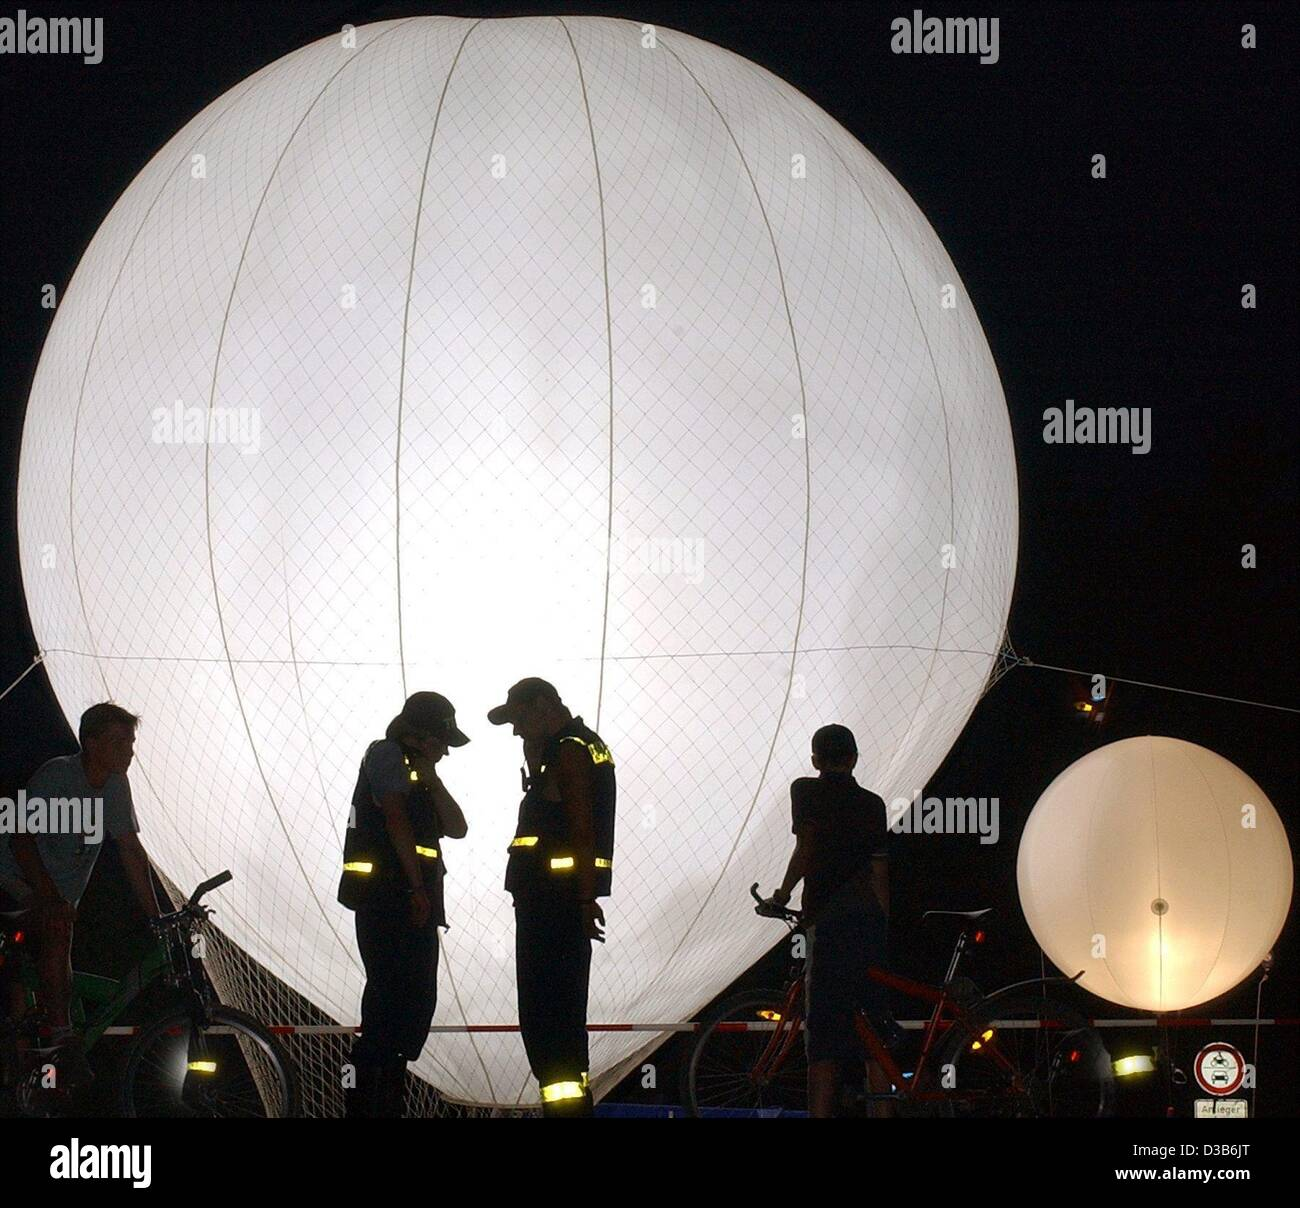 (dpa) - Helium-filled balloons are lifted to the sky in the night of 22 August 2002 to illuminate the city of Eilenburg, - Stock Image